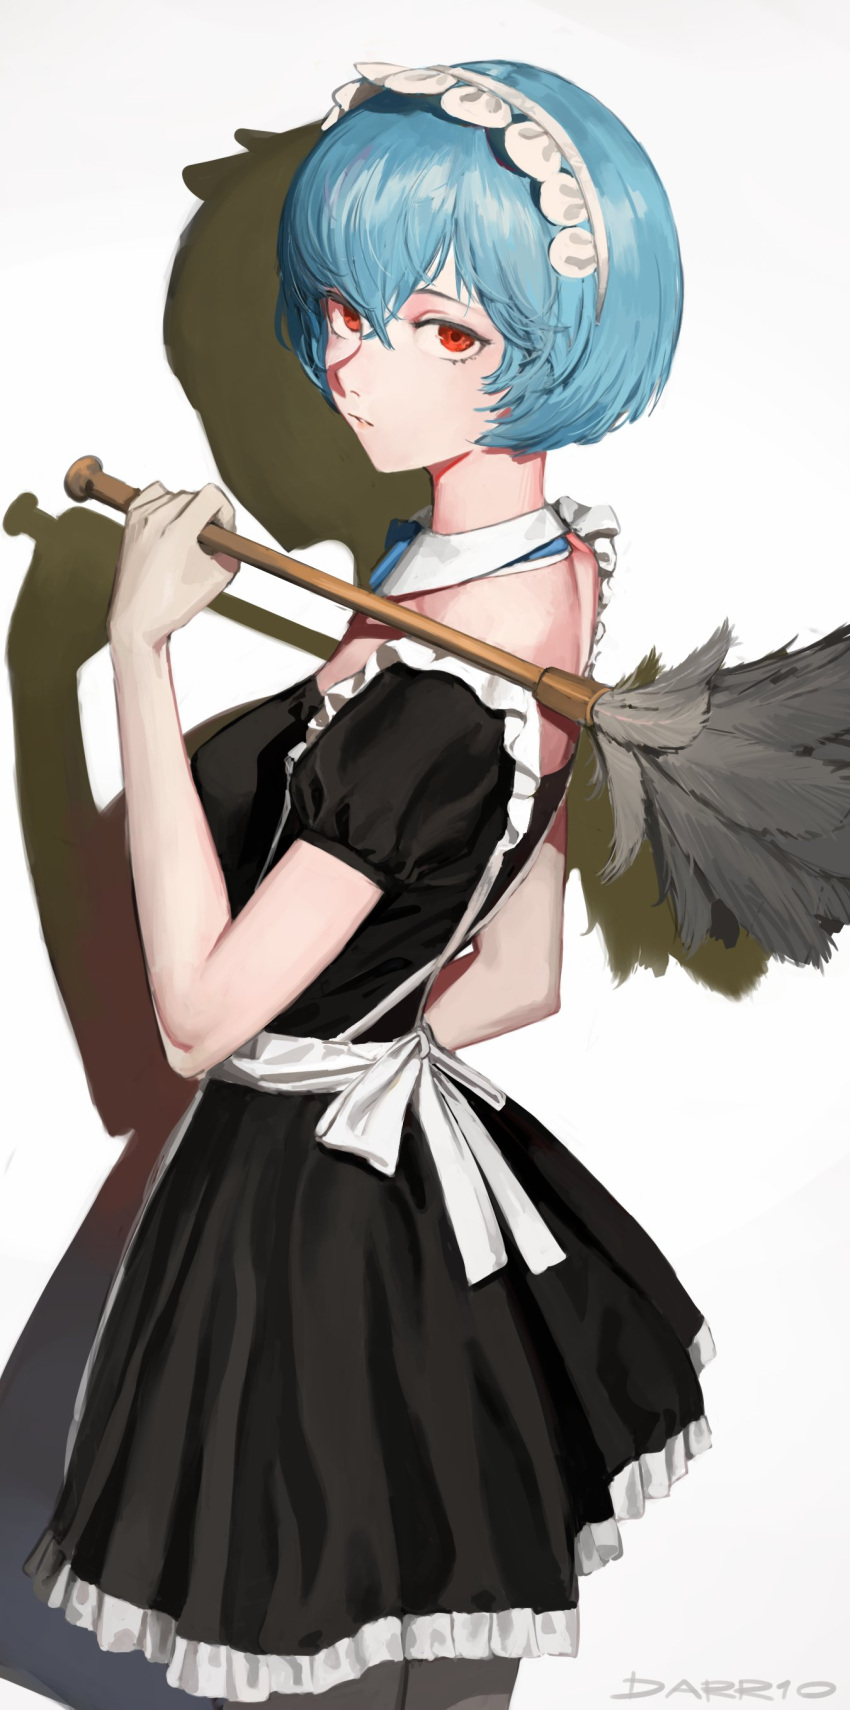 1girl absurdres alternate_costume apron ayanami_rei blue_hair bob_cut cowboy_shot darr1o detached_collar enmaided feather_duster frills from_behind hair_between_eyes highres holding looking_at_viewer looking_back maid maid_apron maid_headdress neon_genesis_evangelion parted_lips puffy_short_sleeves puffy_sleeves red_eyes shadow short_hair short_sleeves signature solo white_background